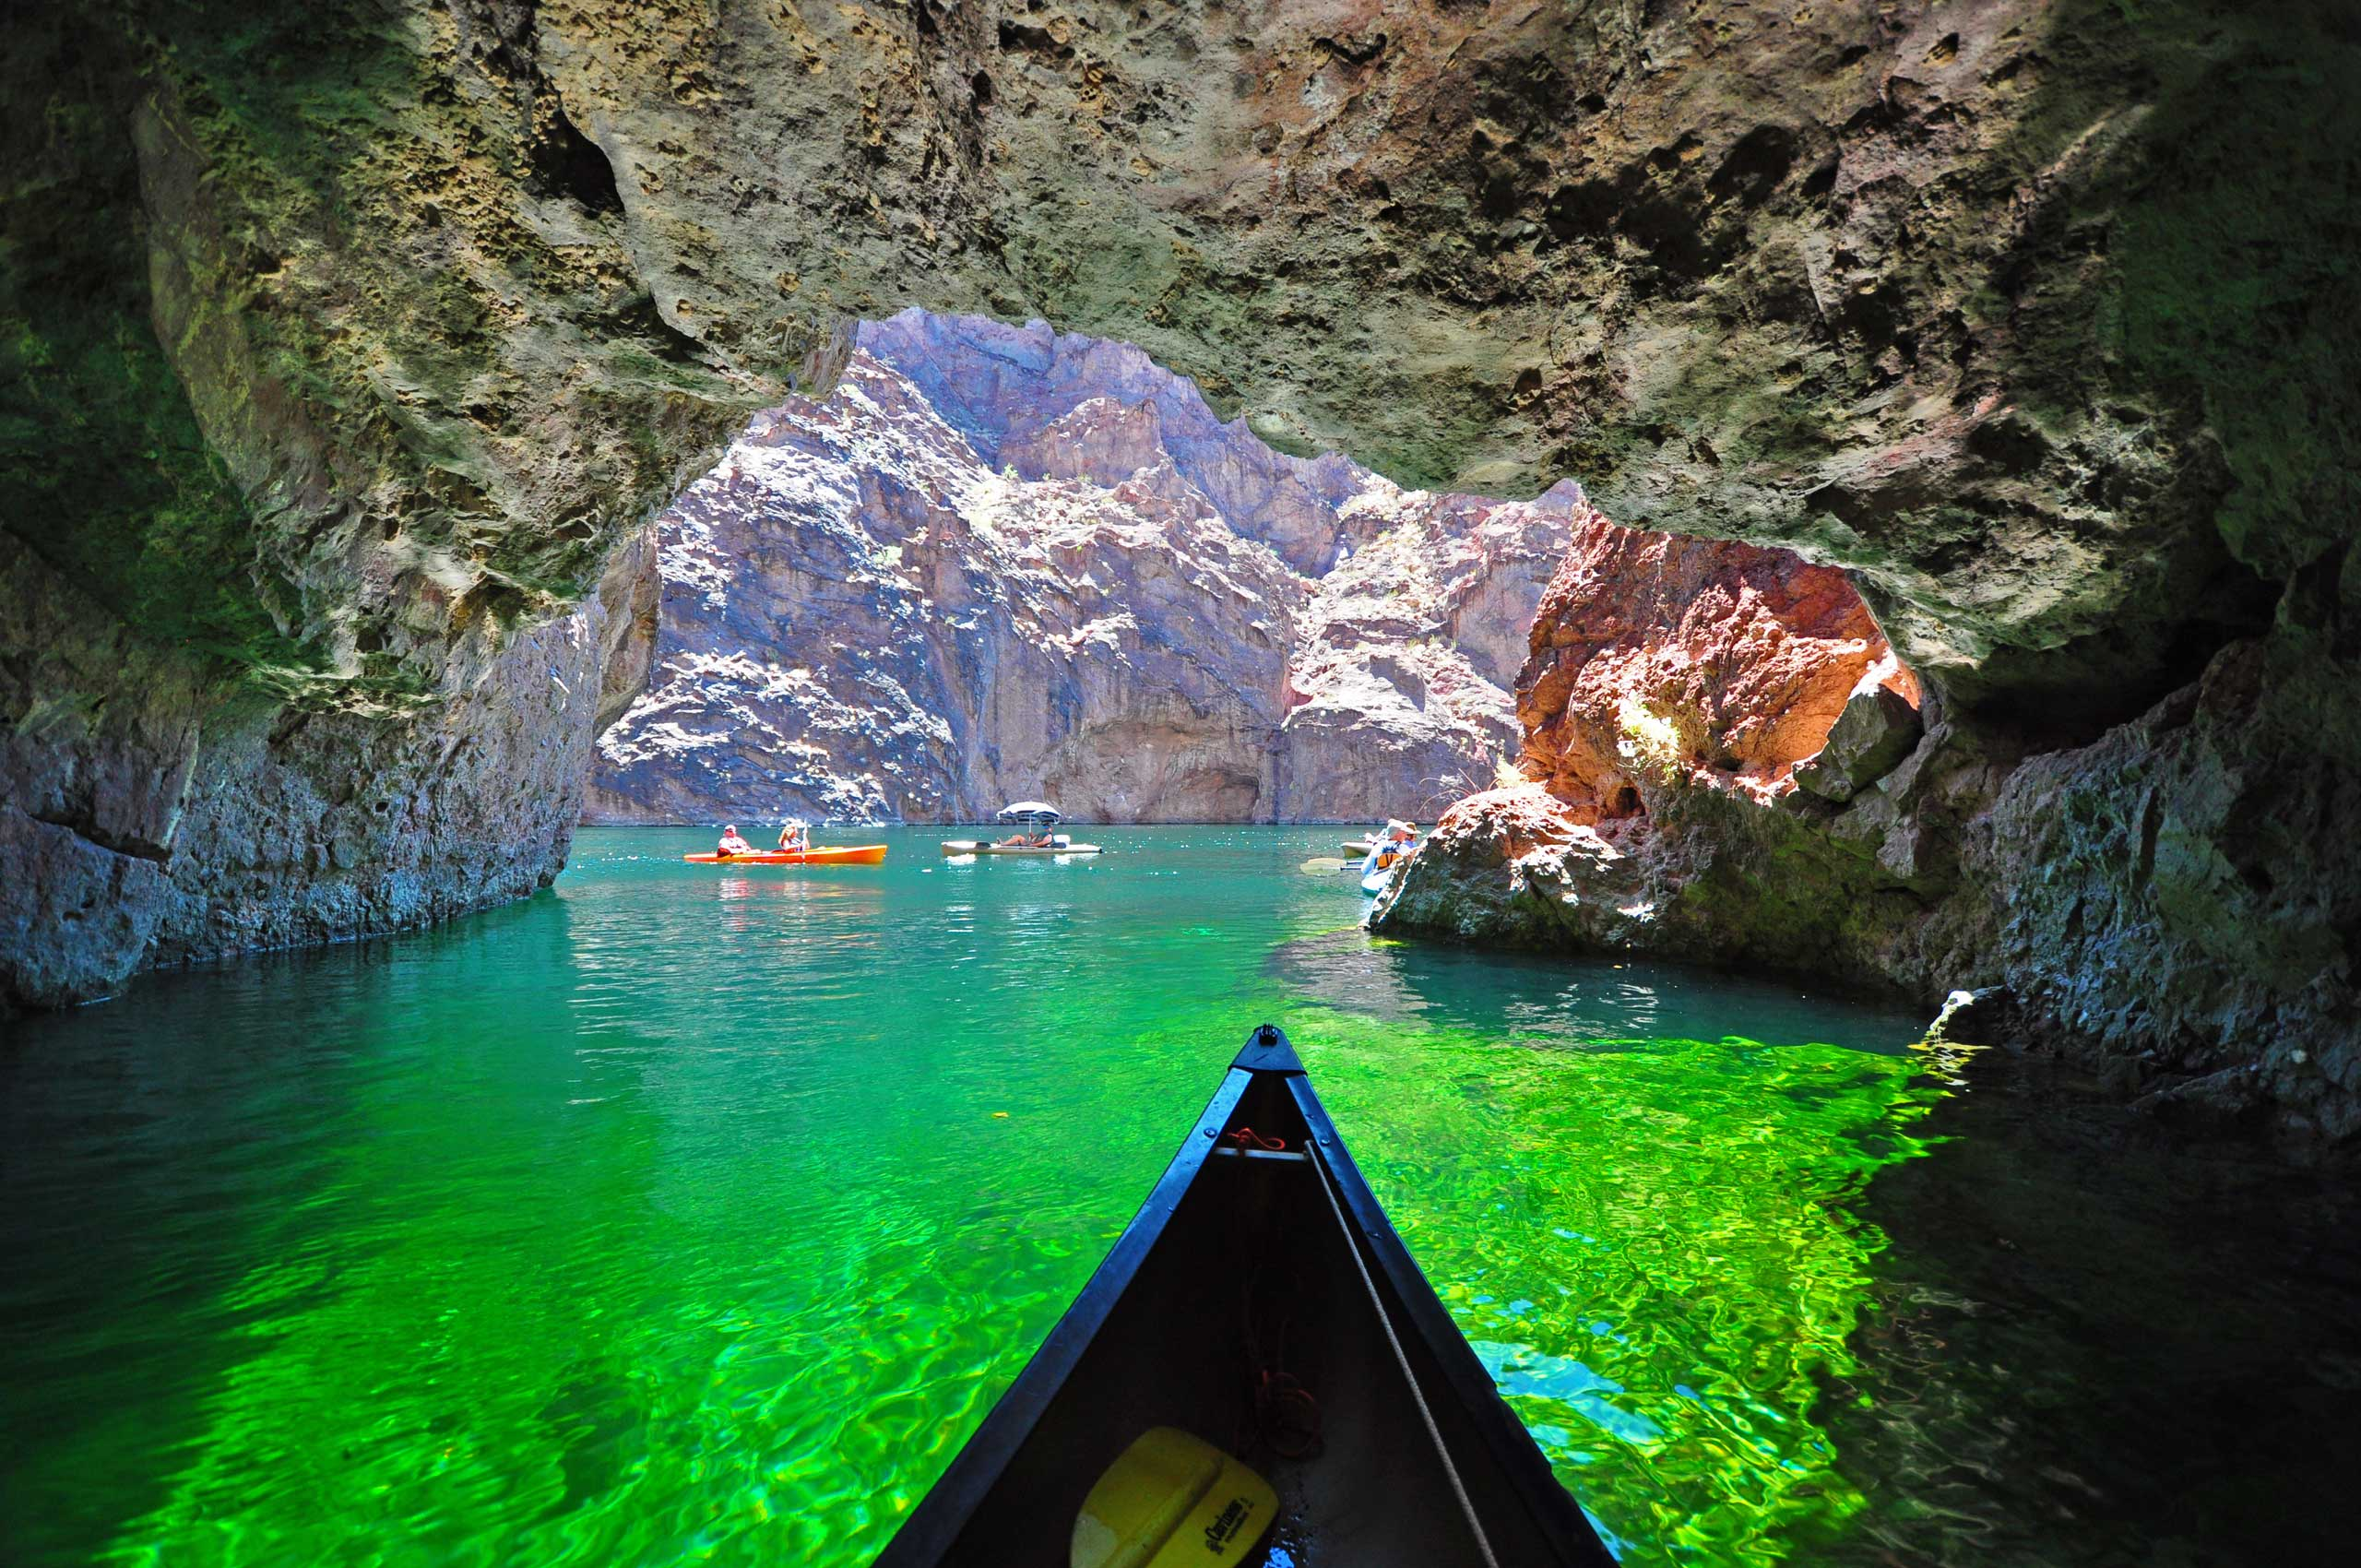 On October 8, 1964, this Colorado River lake area on the border of Nevada and Arizona became the first national recreation area in the U.S. With its gorgeous contrasts of desert and water, mountains and canyons, Lake Mead National Recreation Area offers year-round recreational opportunities.